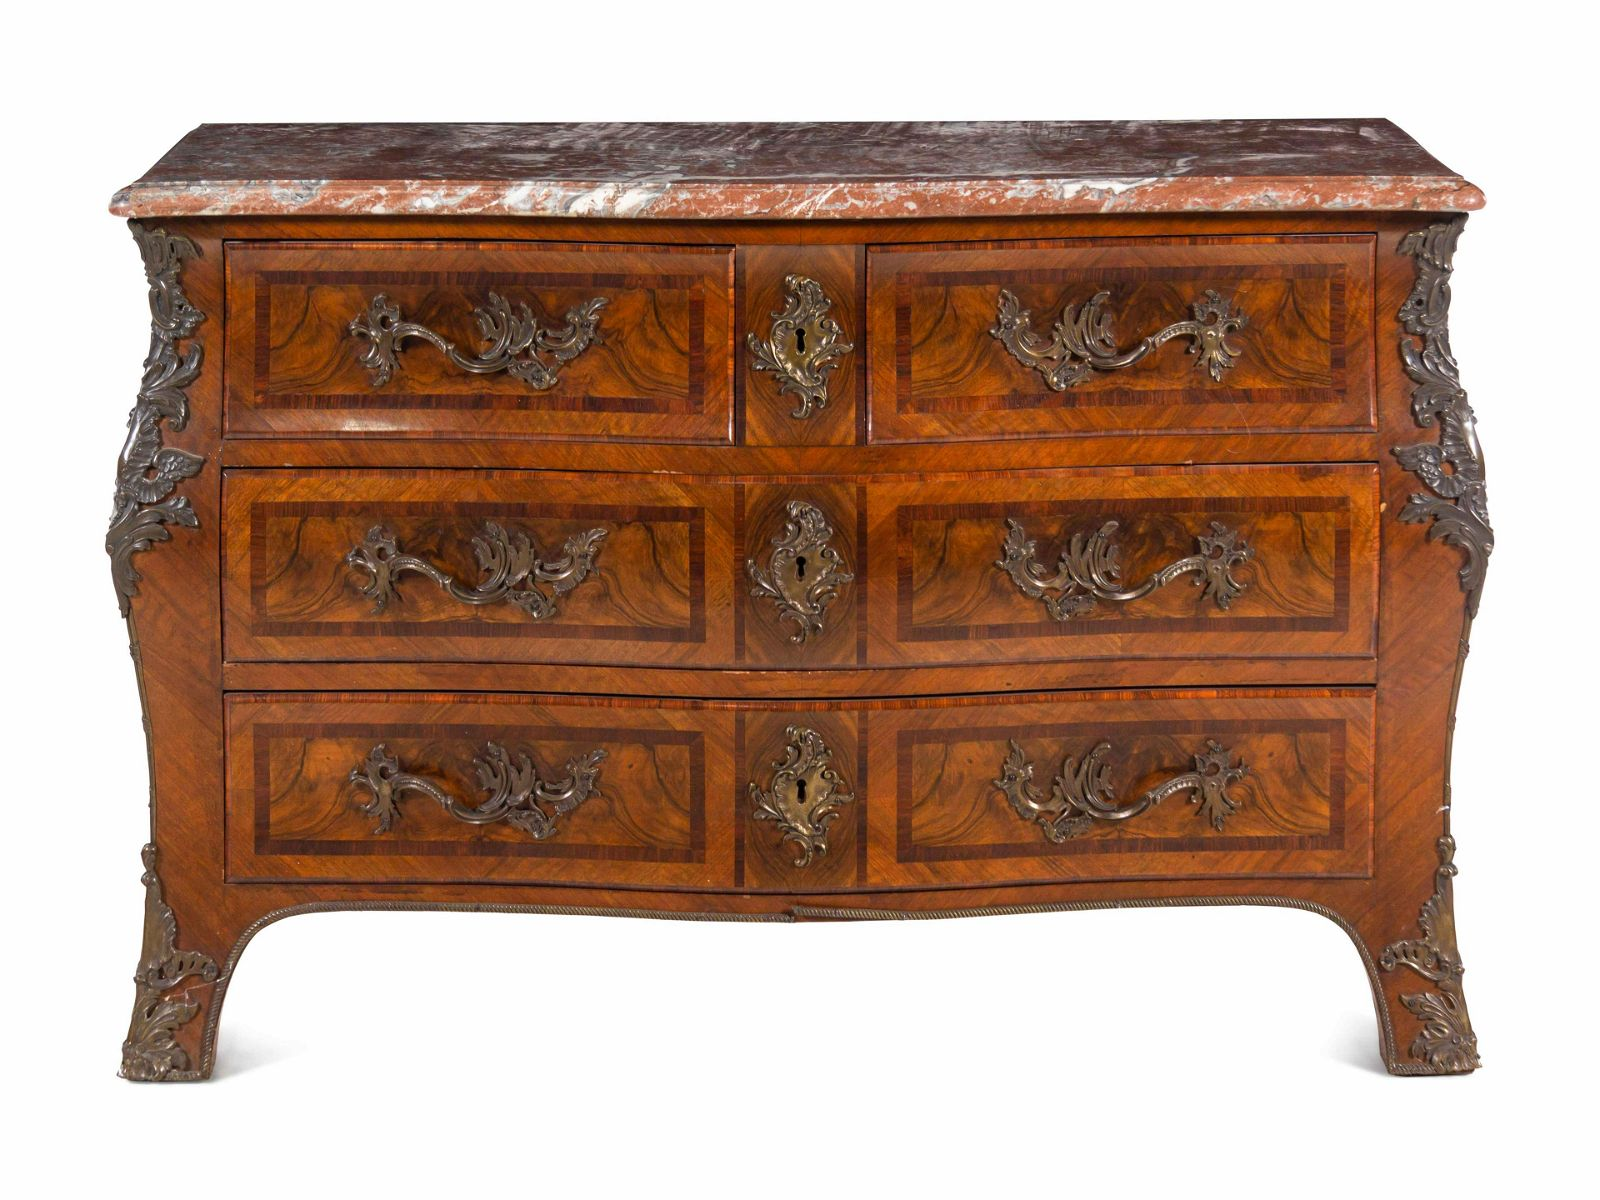 A Regence Style Rosewood-Banded Walnut Marble-Top